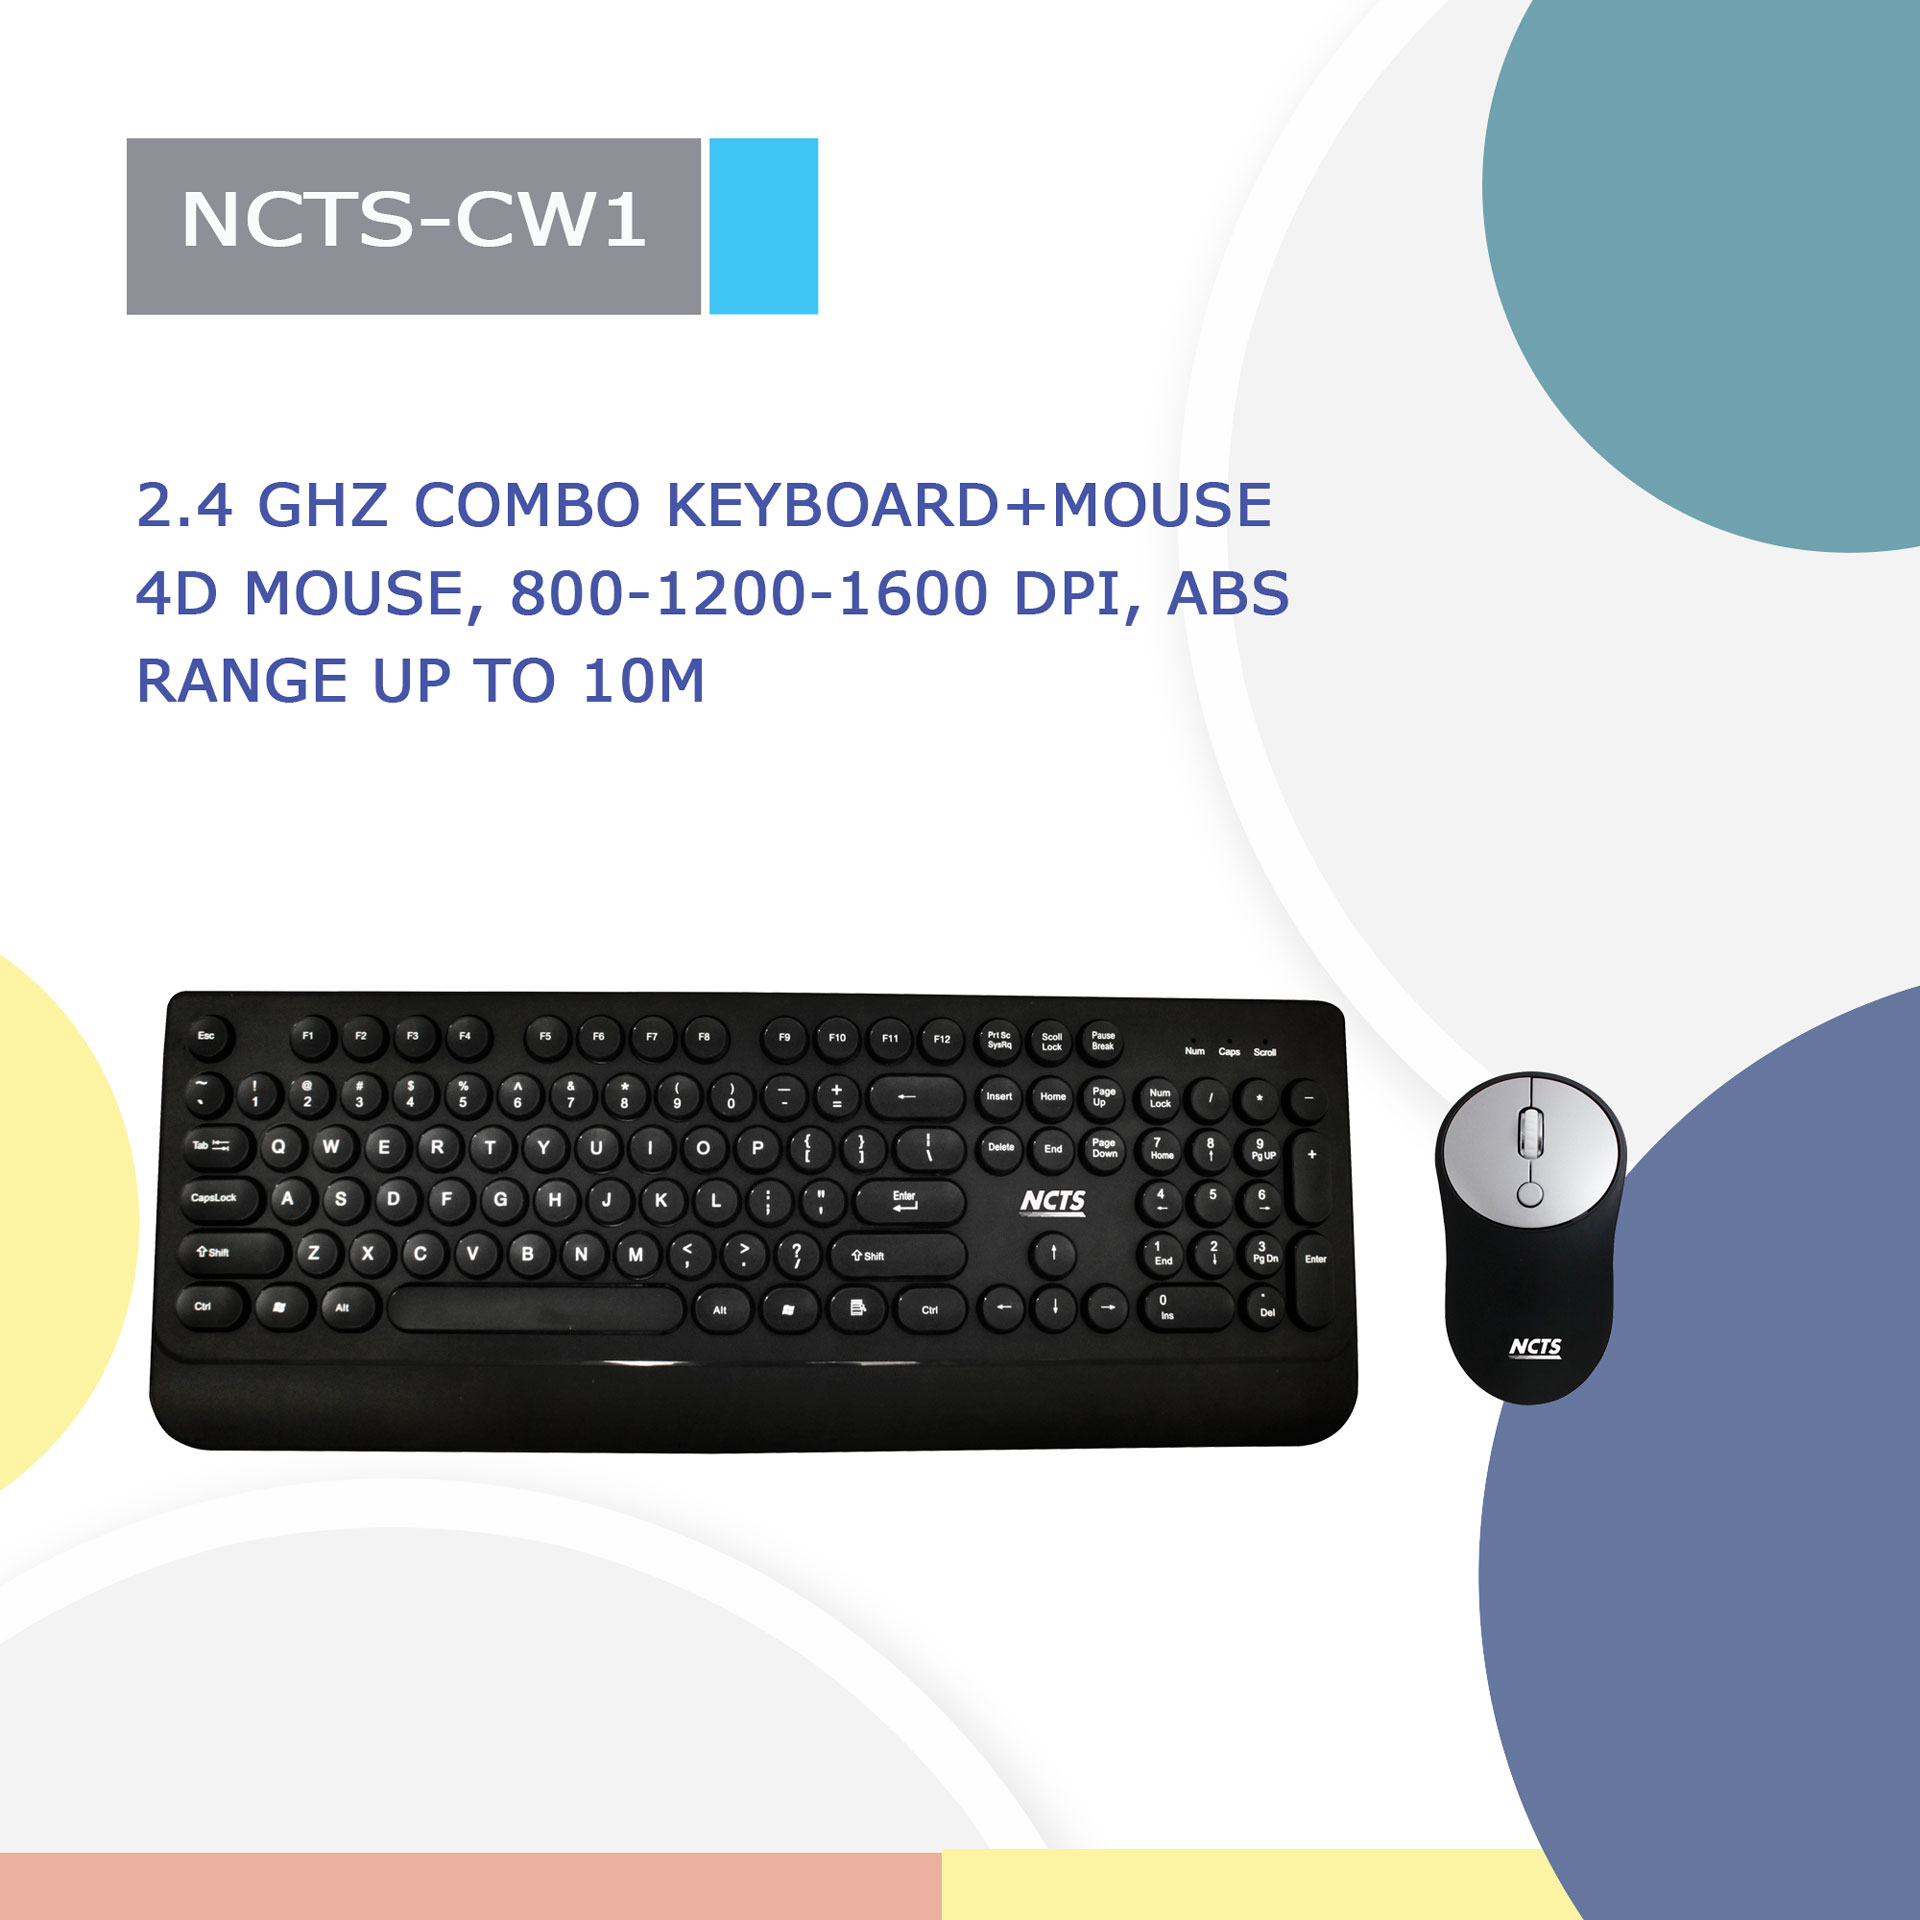 NCTS-CW1